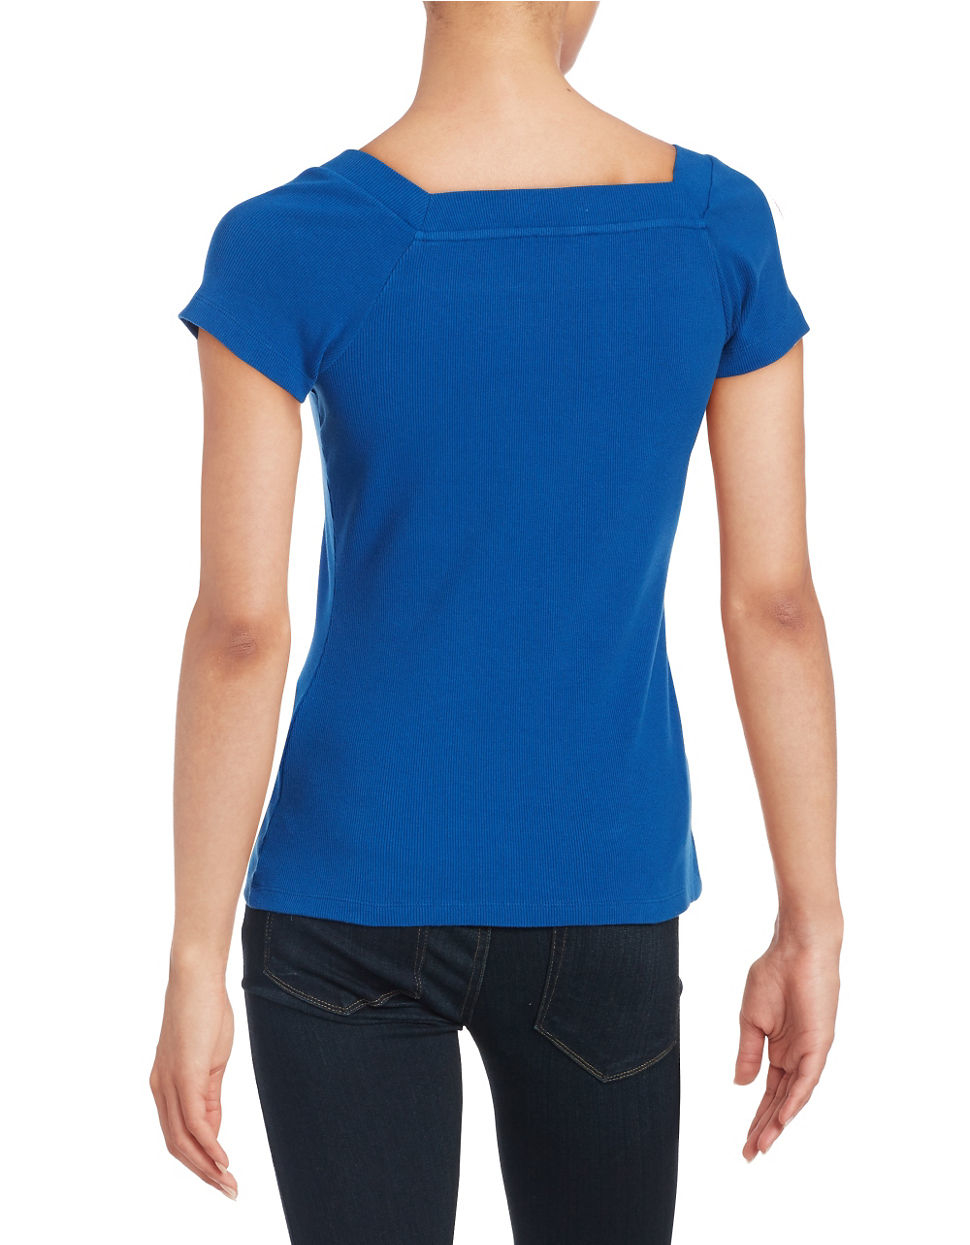 Lord taylor petite ribbed tee shirt in blue lyst for Petite white tee shirt